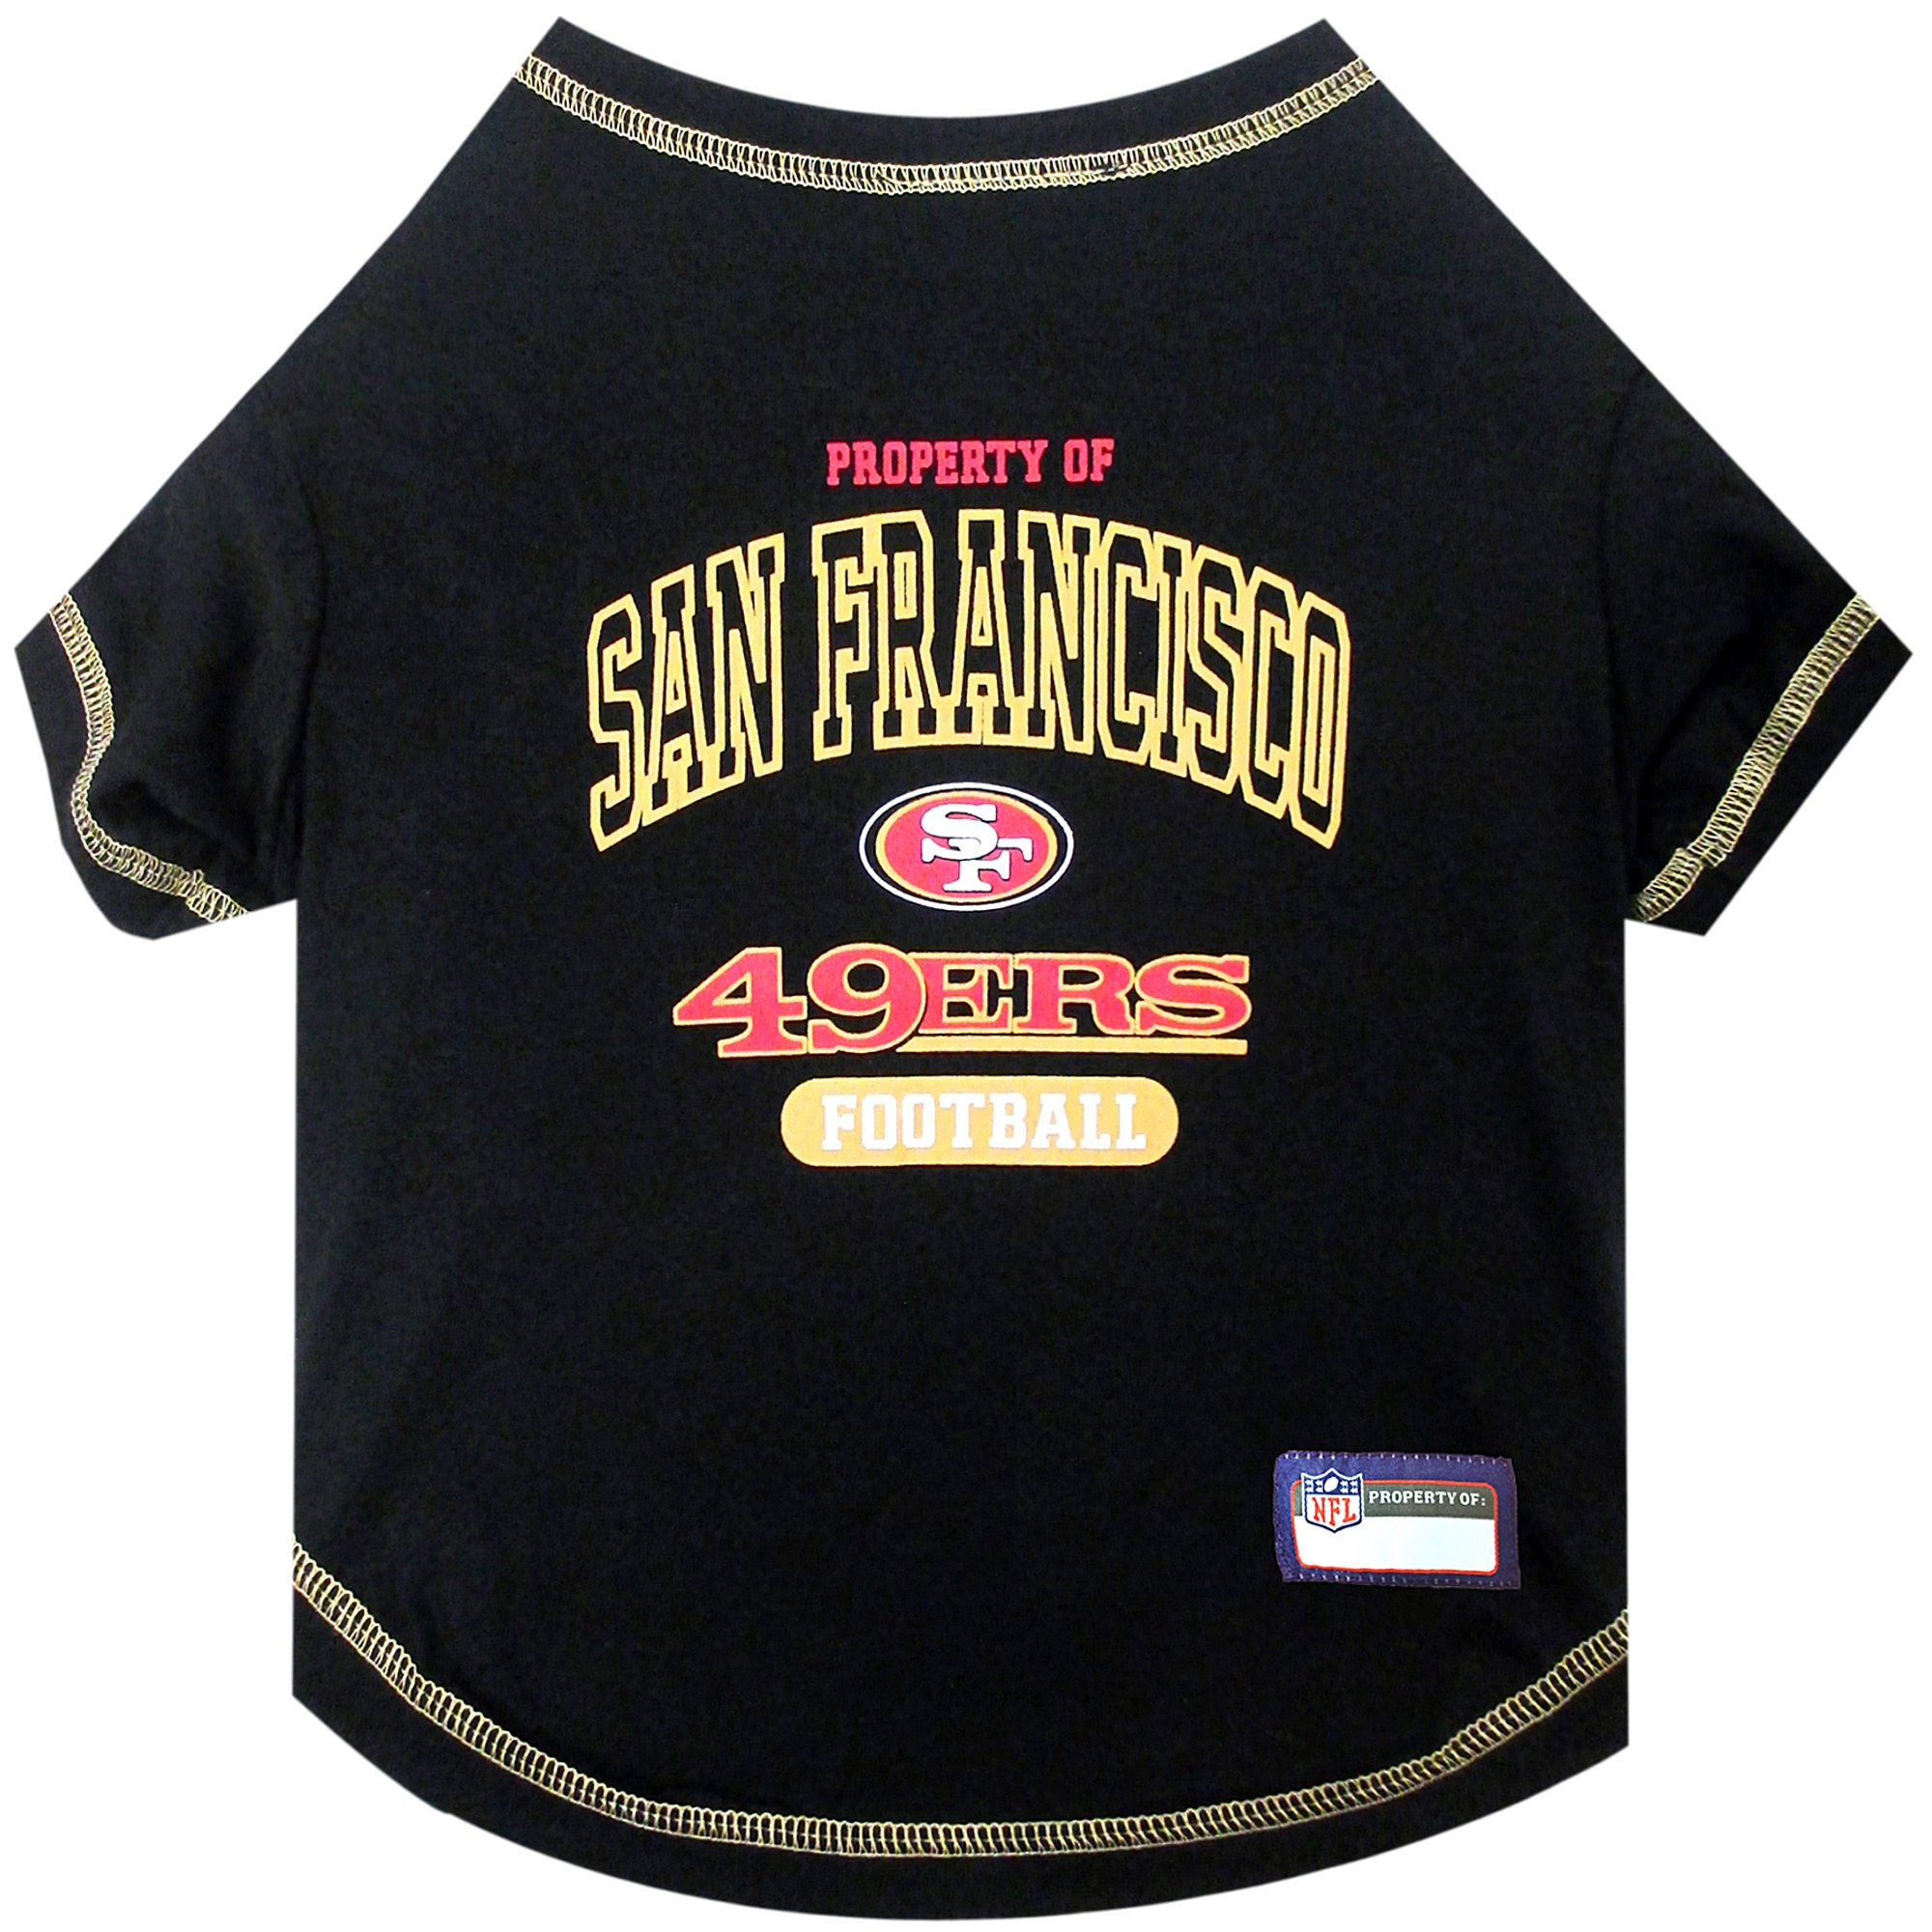 TWO x San Francisco 49ers NFL T shirts